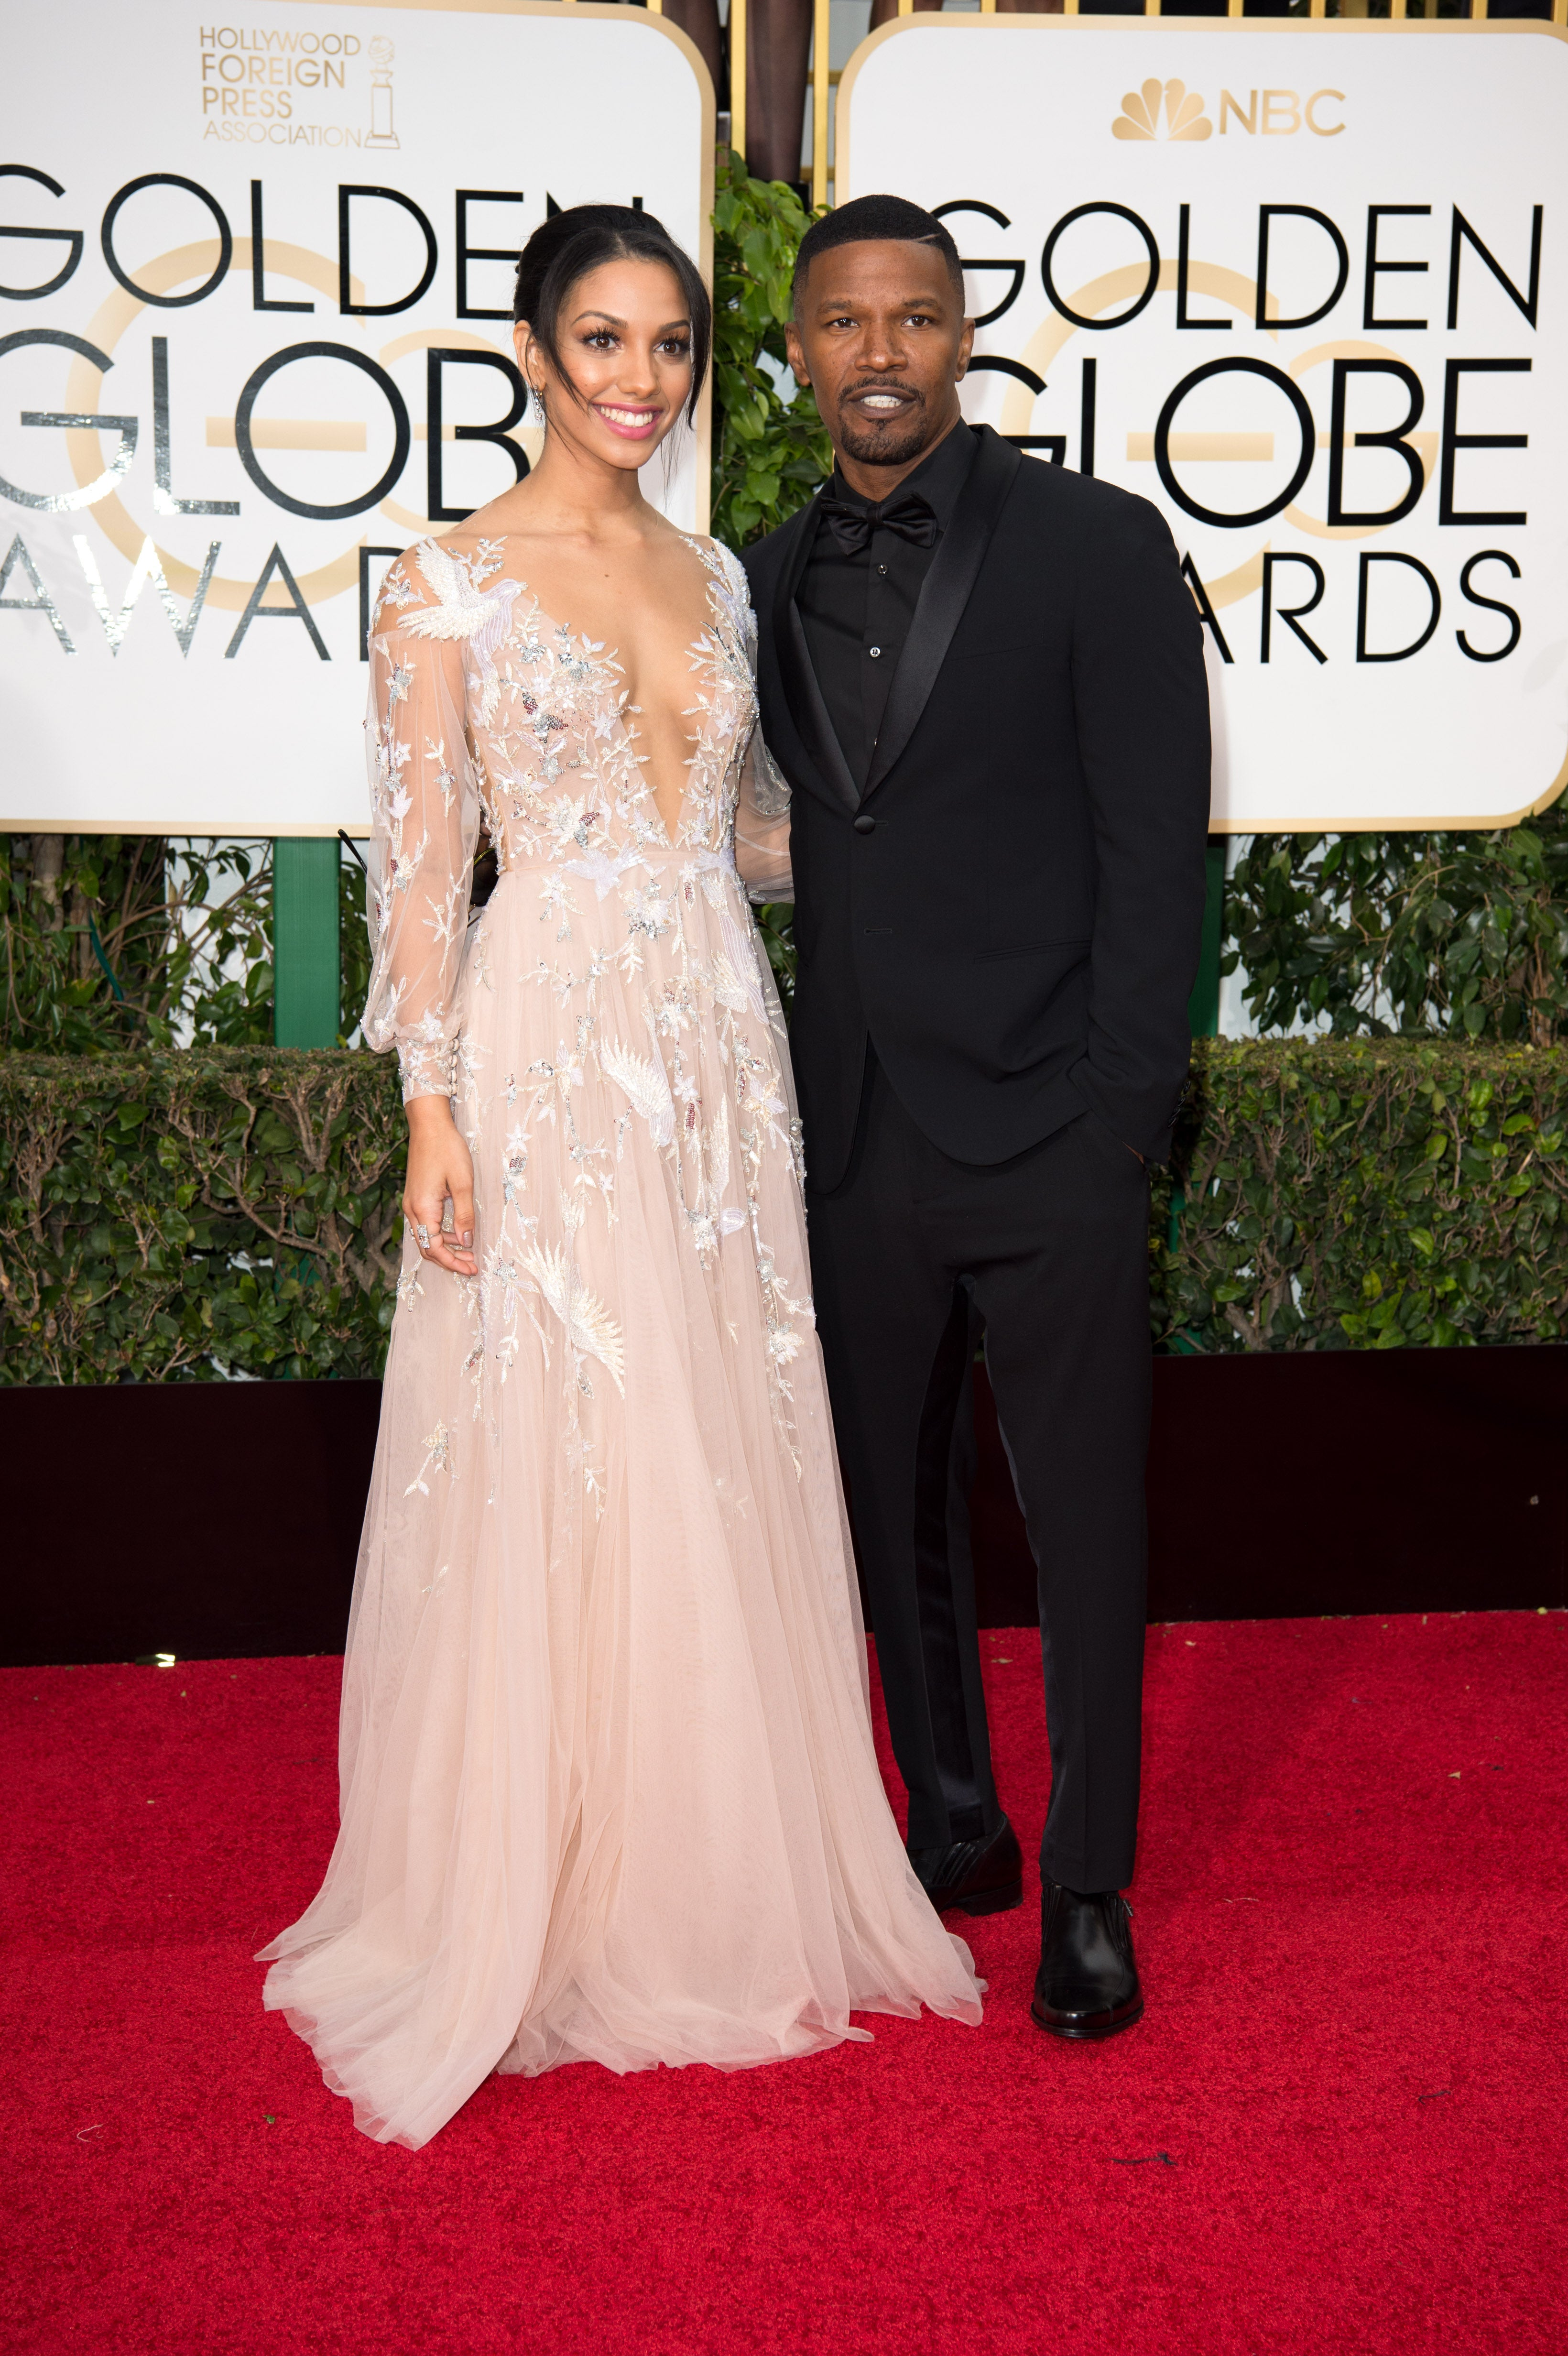 red carpet moments jamie foxx and miss golden globe